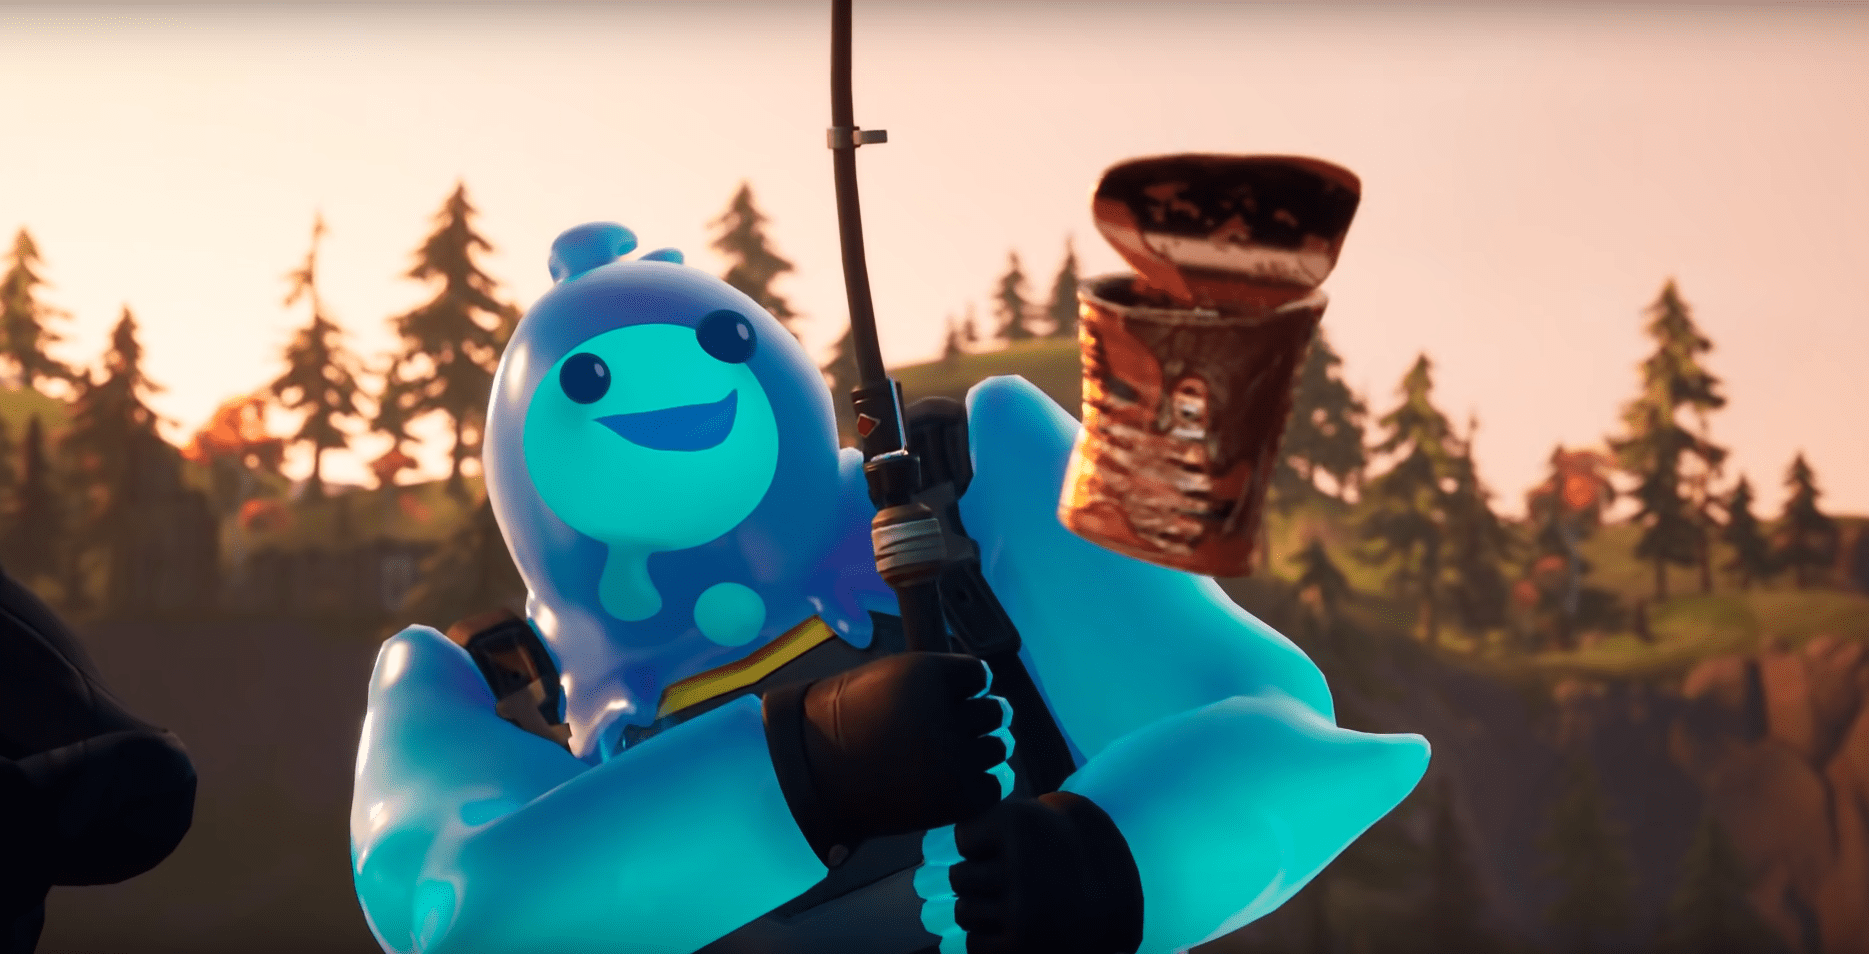 Fortnite Chapter 2 Season 1 How To Find The Mythic Goldfish In Game The Mythic Goldfish Has Finally Been Seen And Used By Players Fortnite Mythical Goldfish